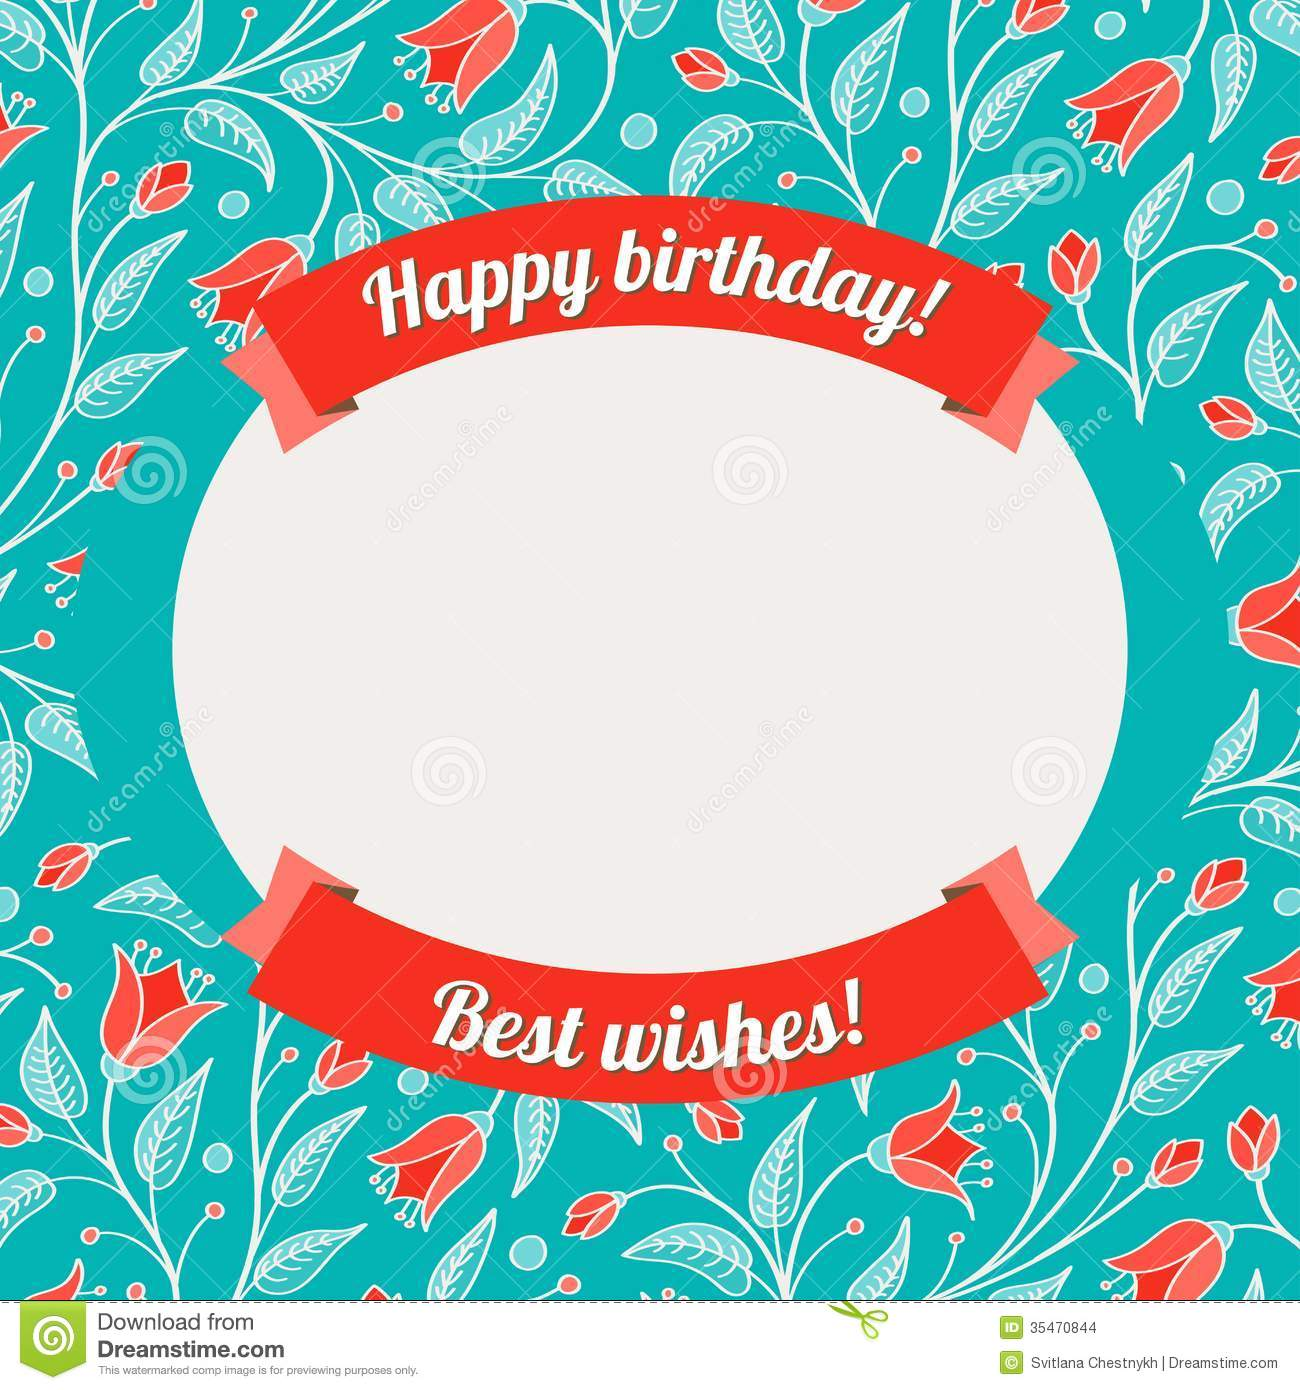 Template For Greeting Card Or Invitation Stock Vector - Illustration ...